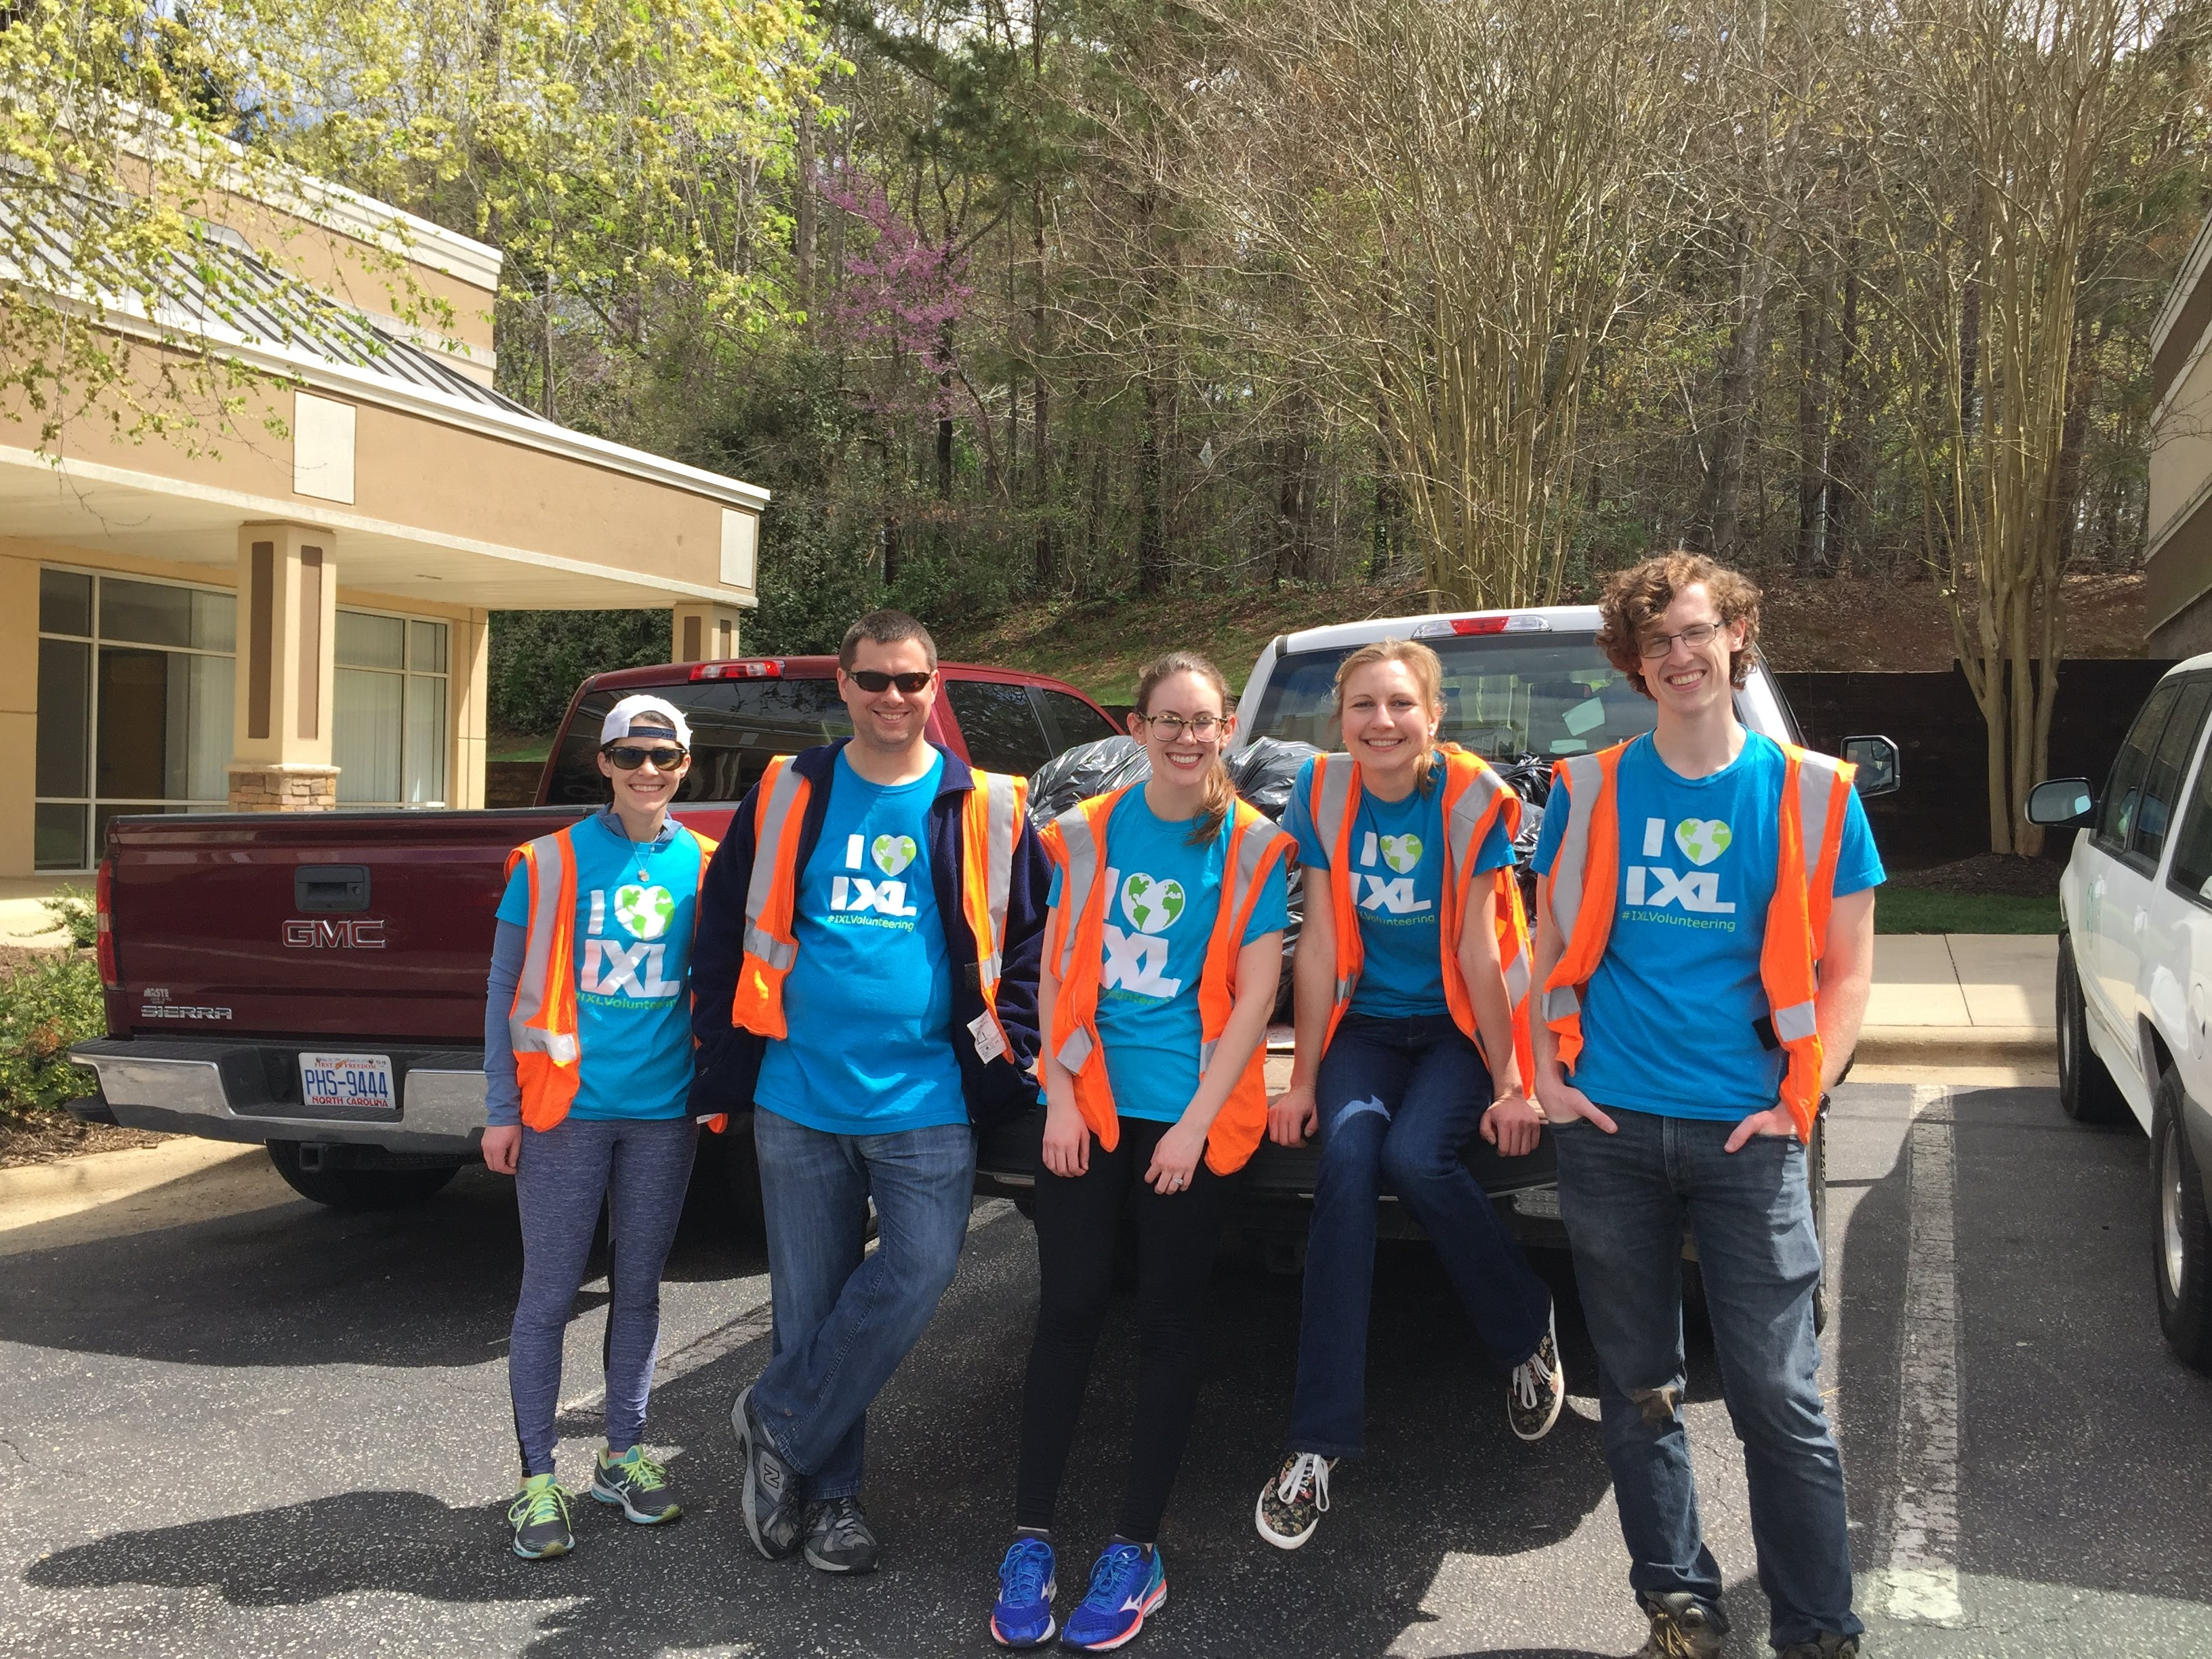 Sprucing Up the Town: IXLers Help Clean Up Cary, NC